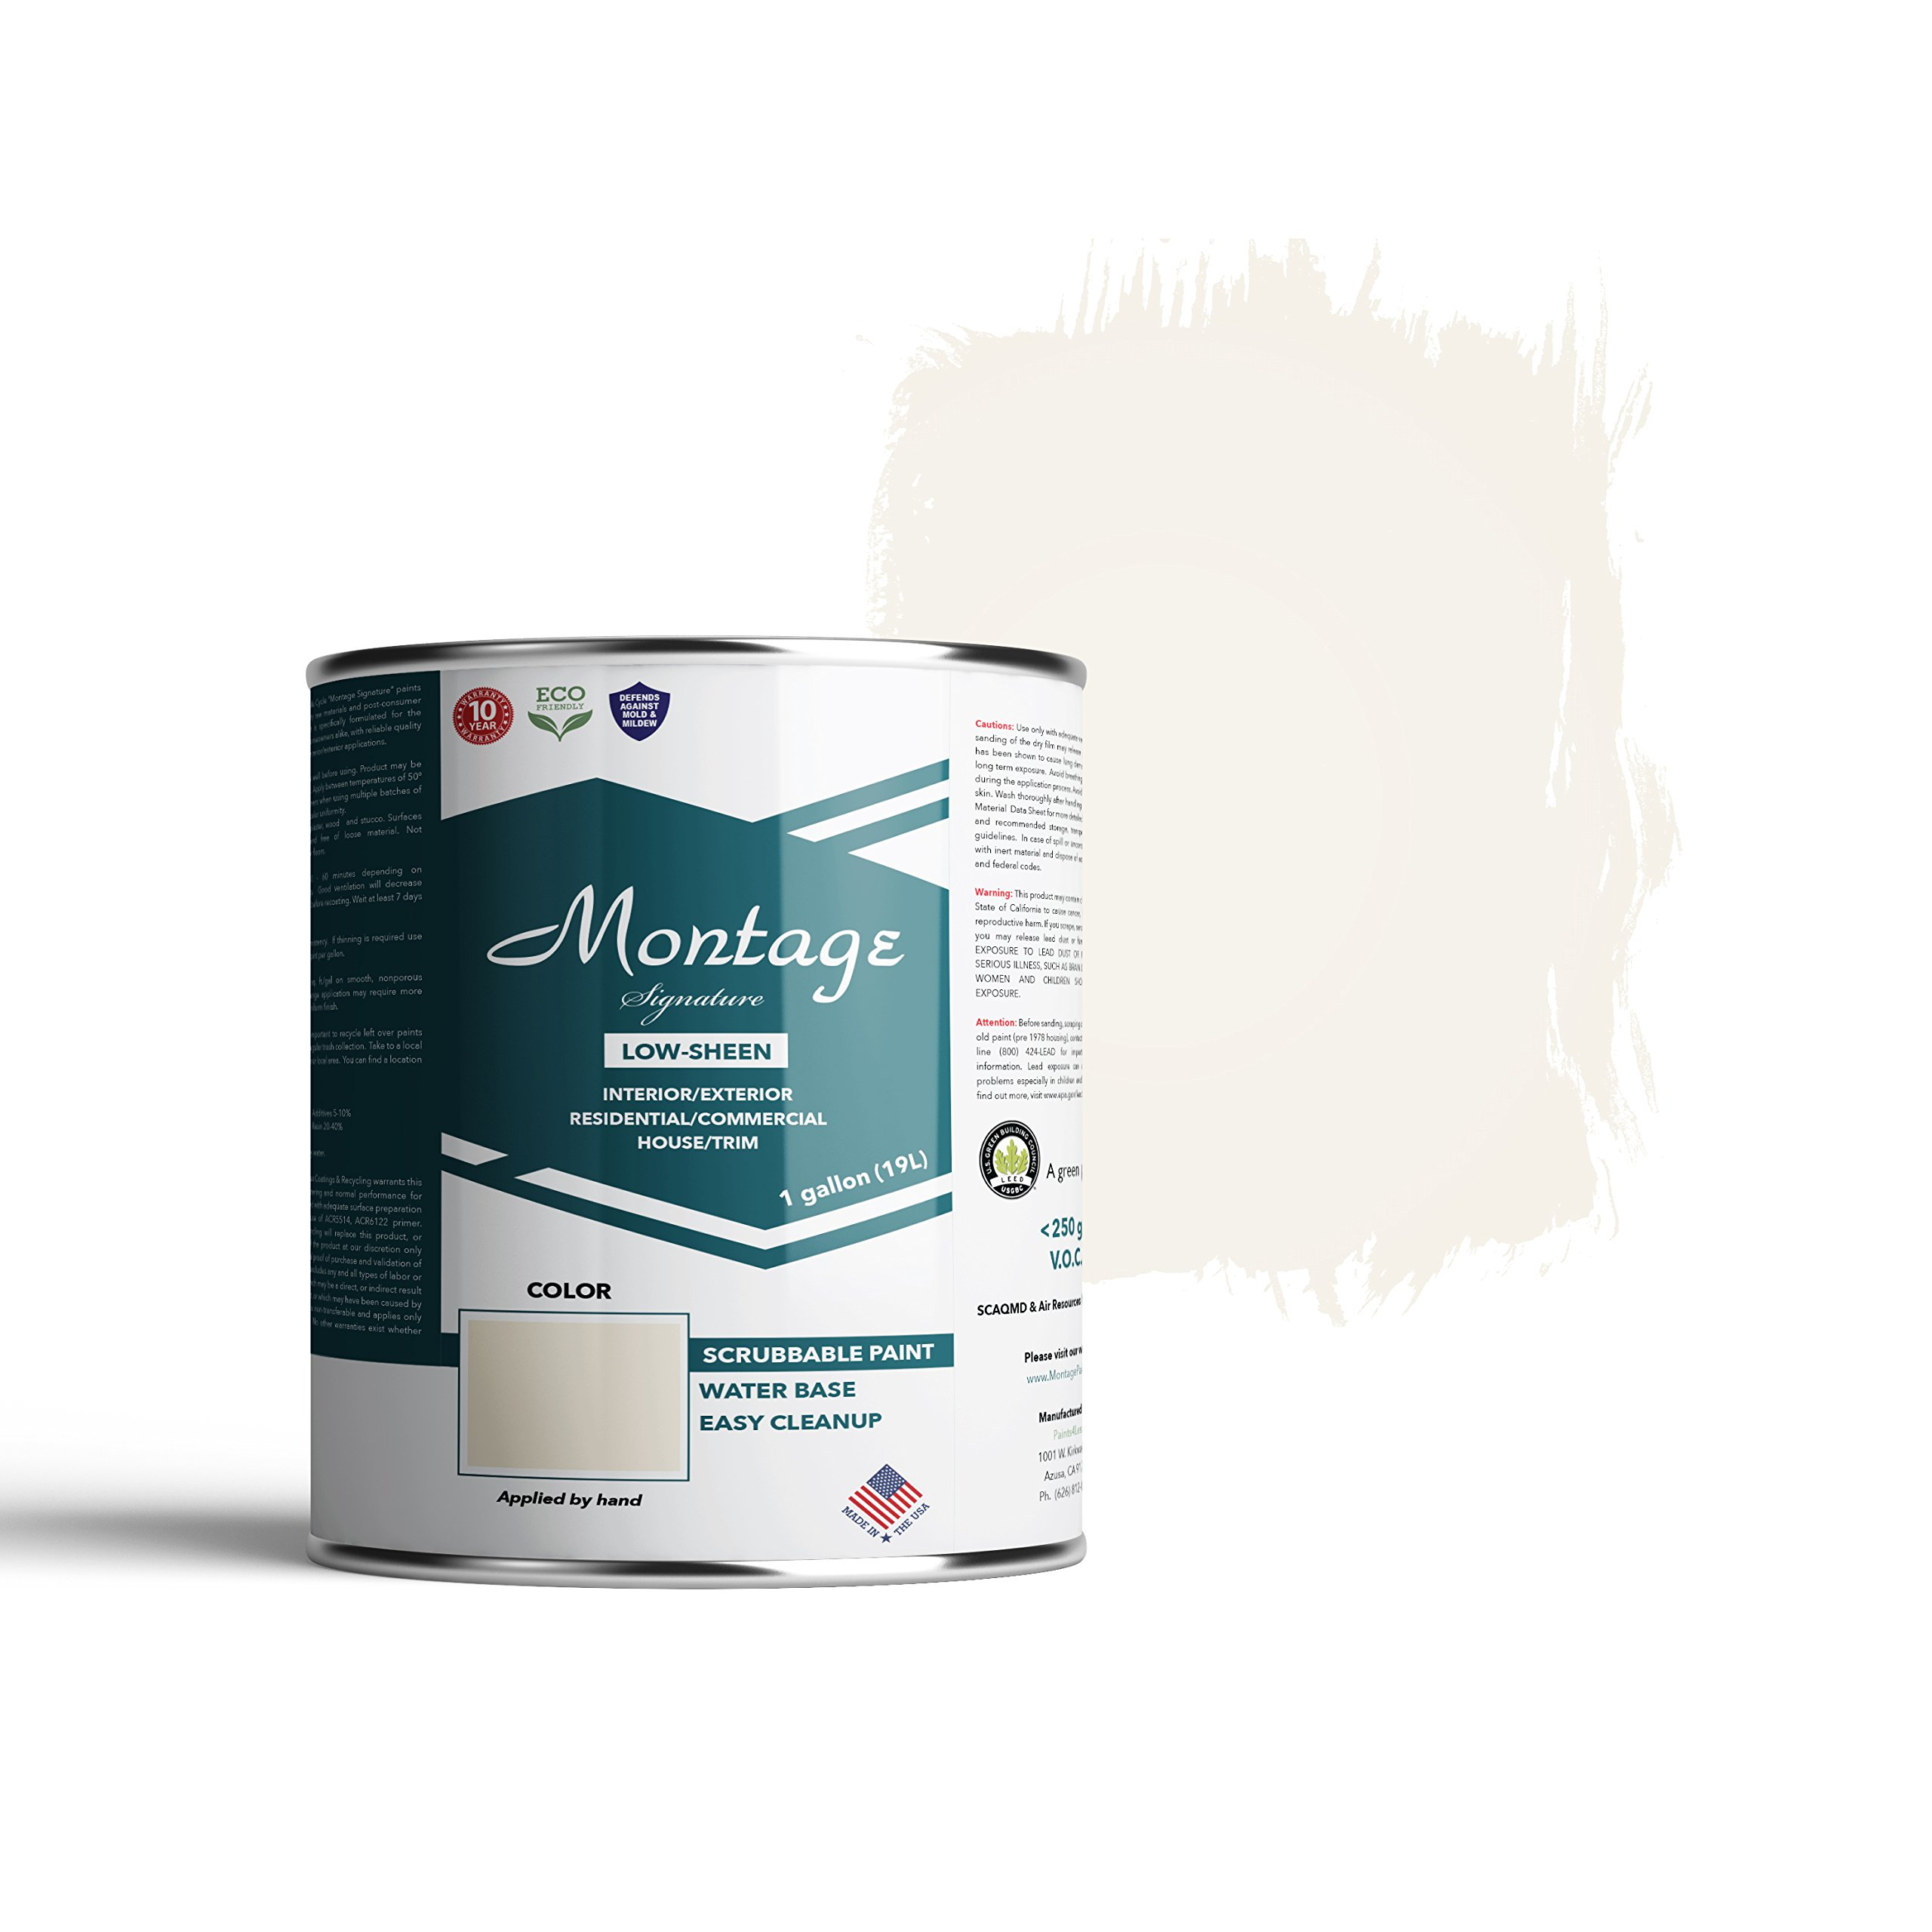 Montage Signature Interior/Exterior Eco-Friendly Paint, Snow White - Low Sheen, 1 Gallon